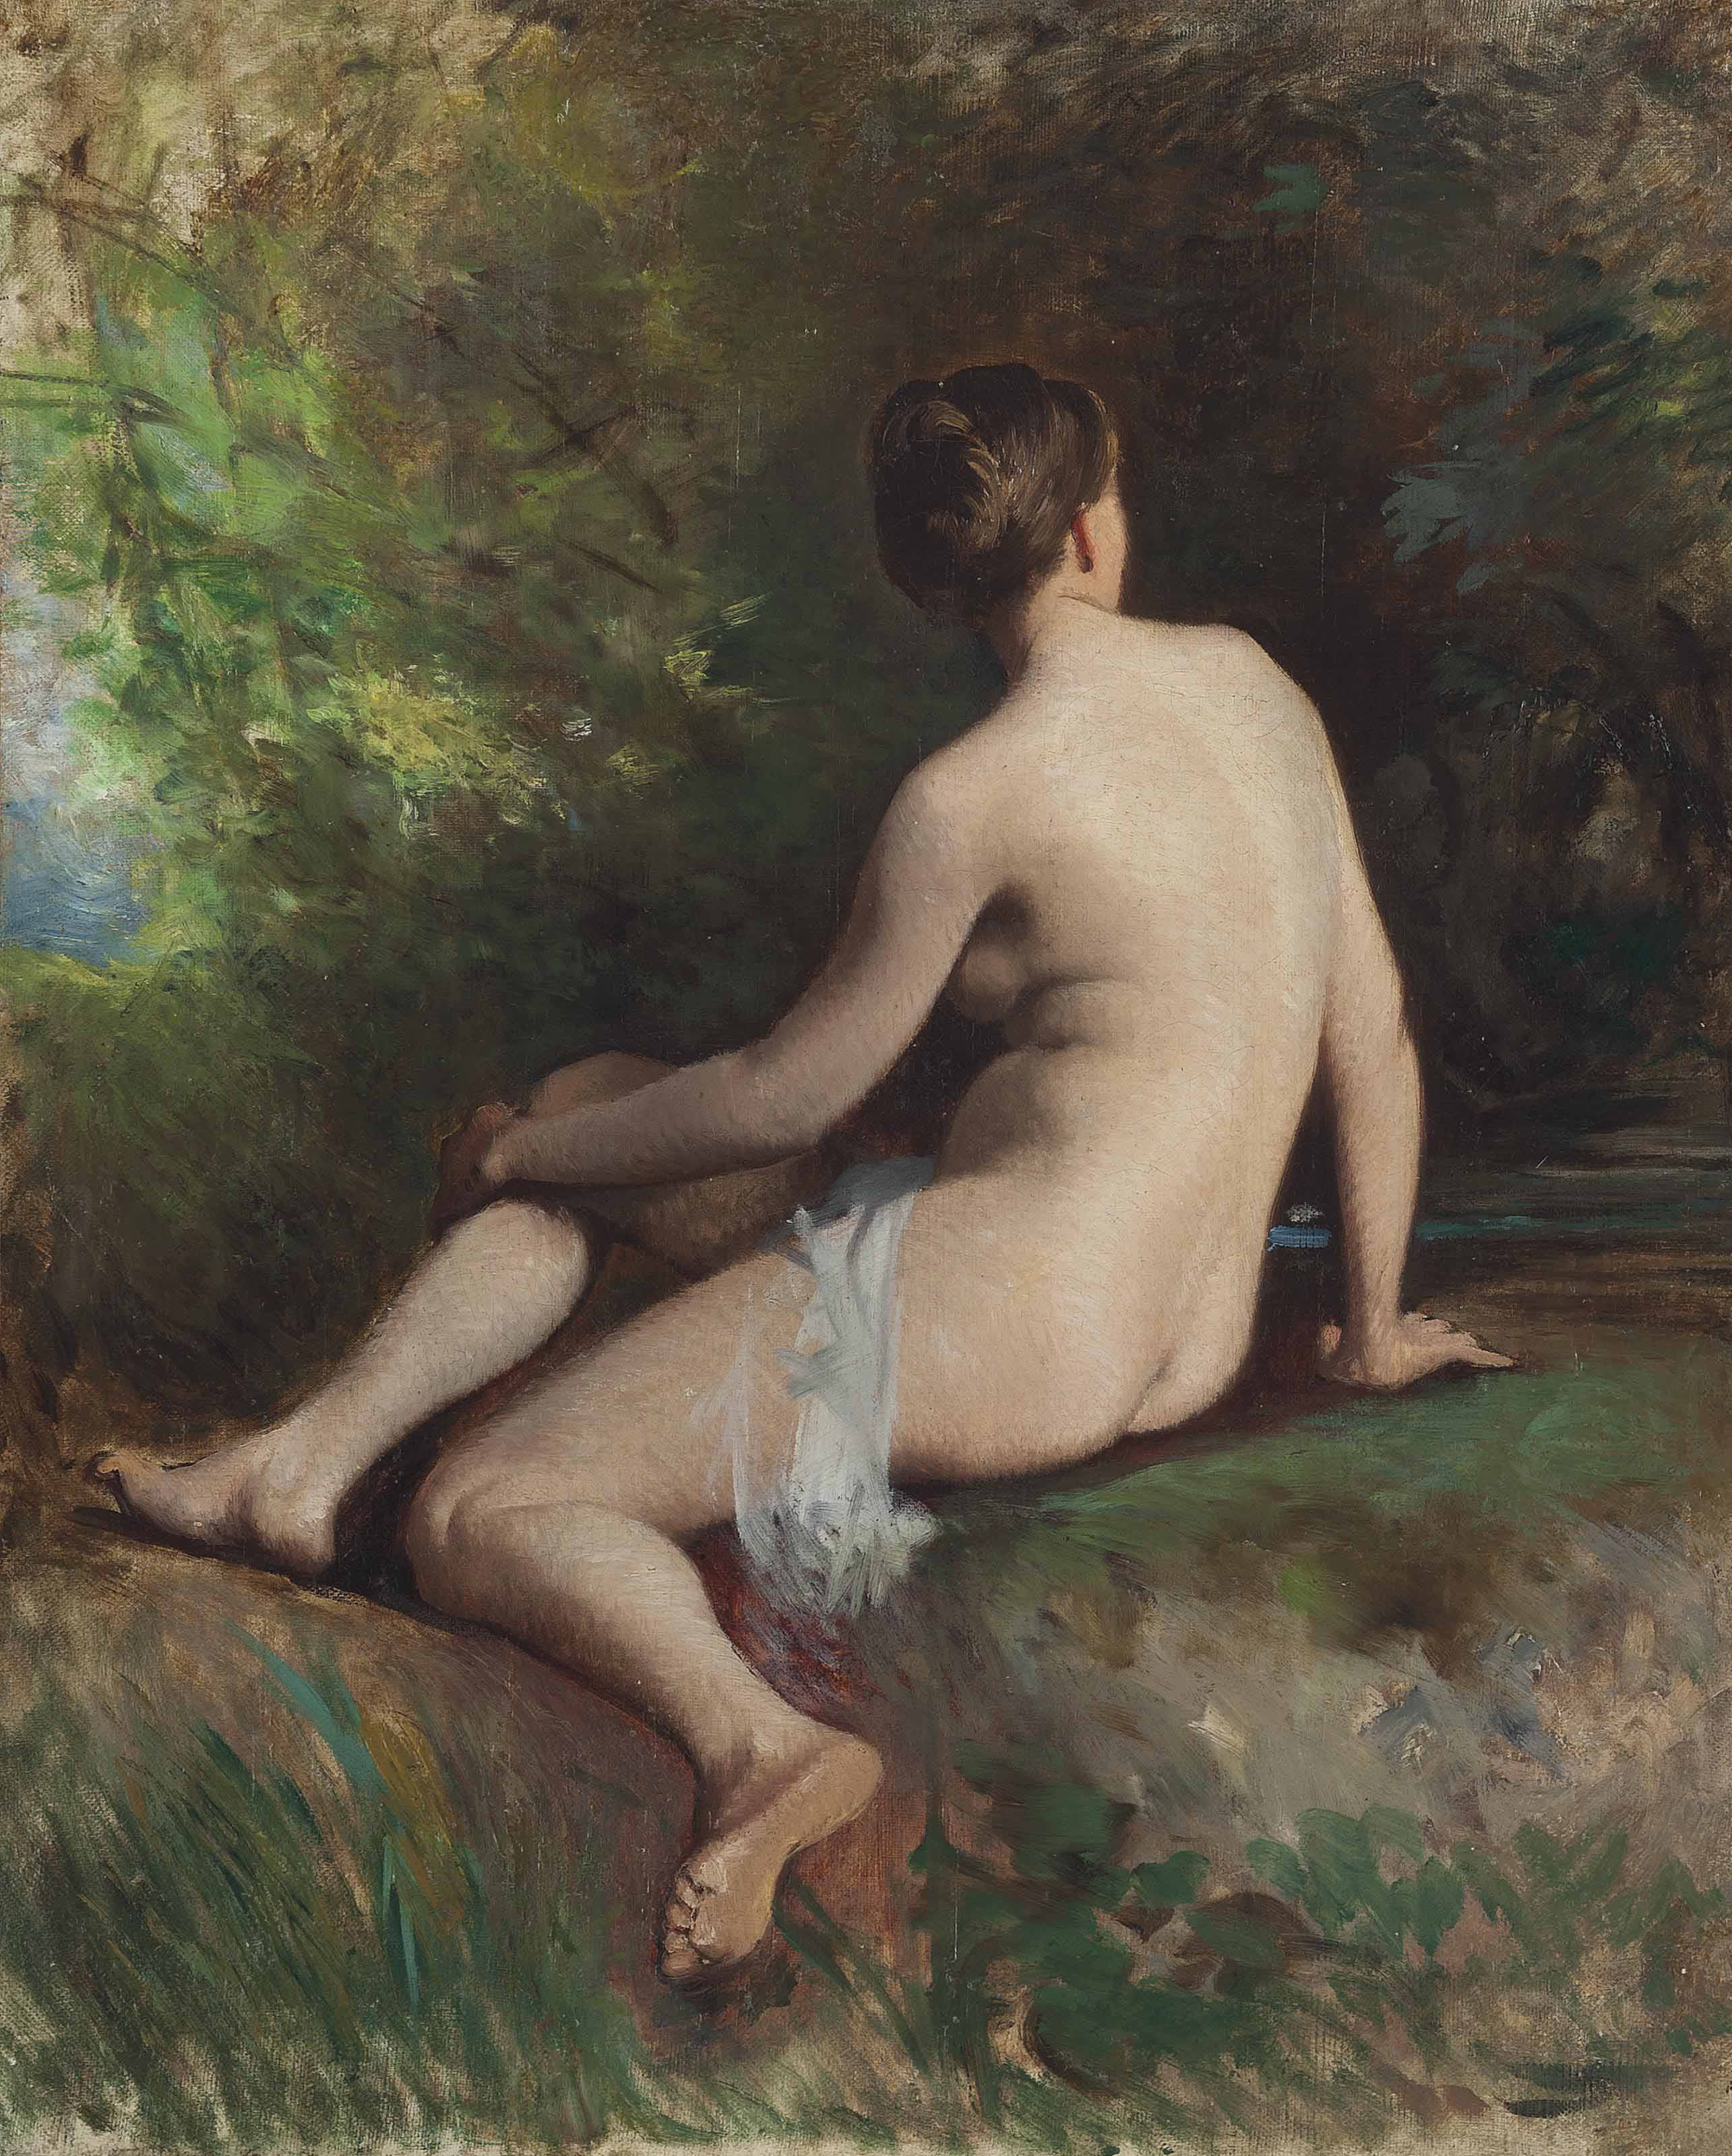 A nude in the forest